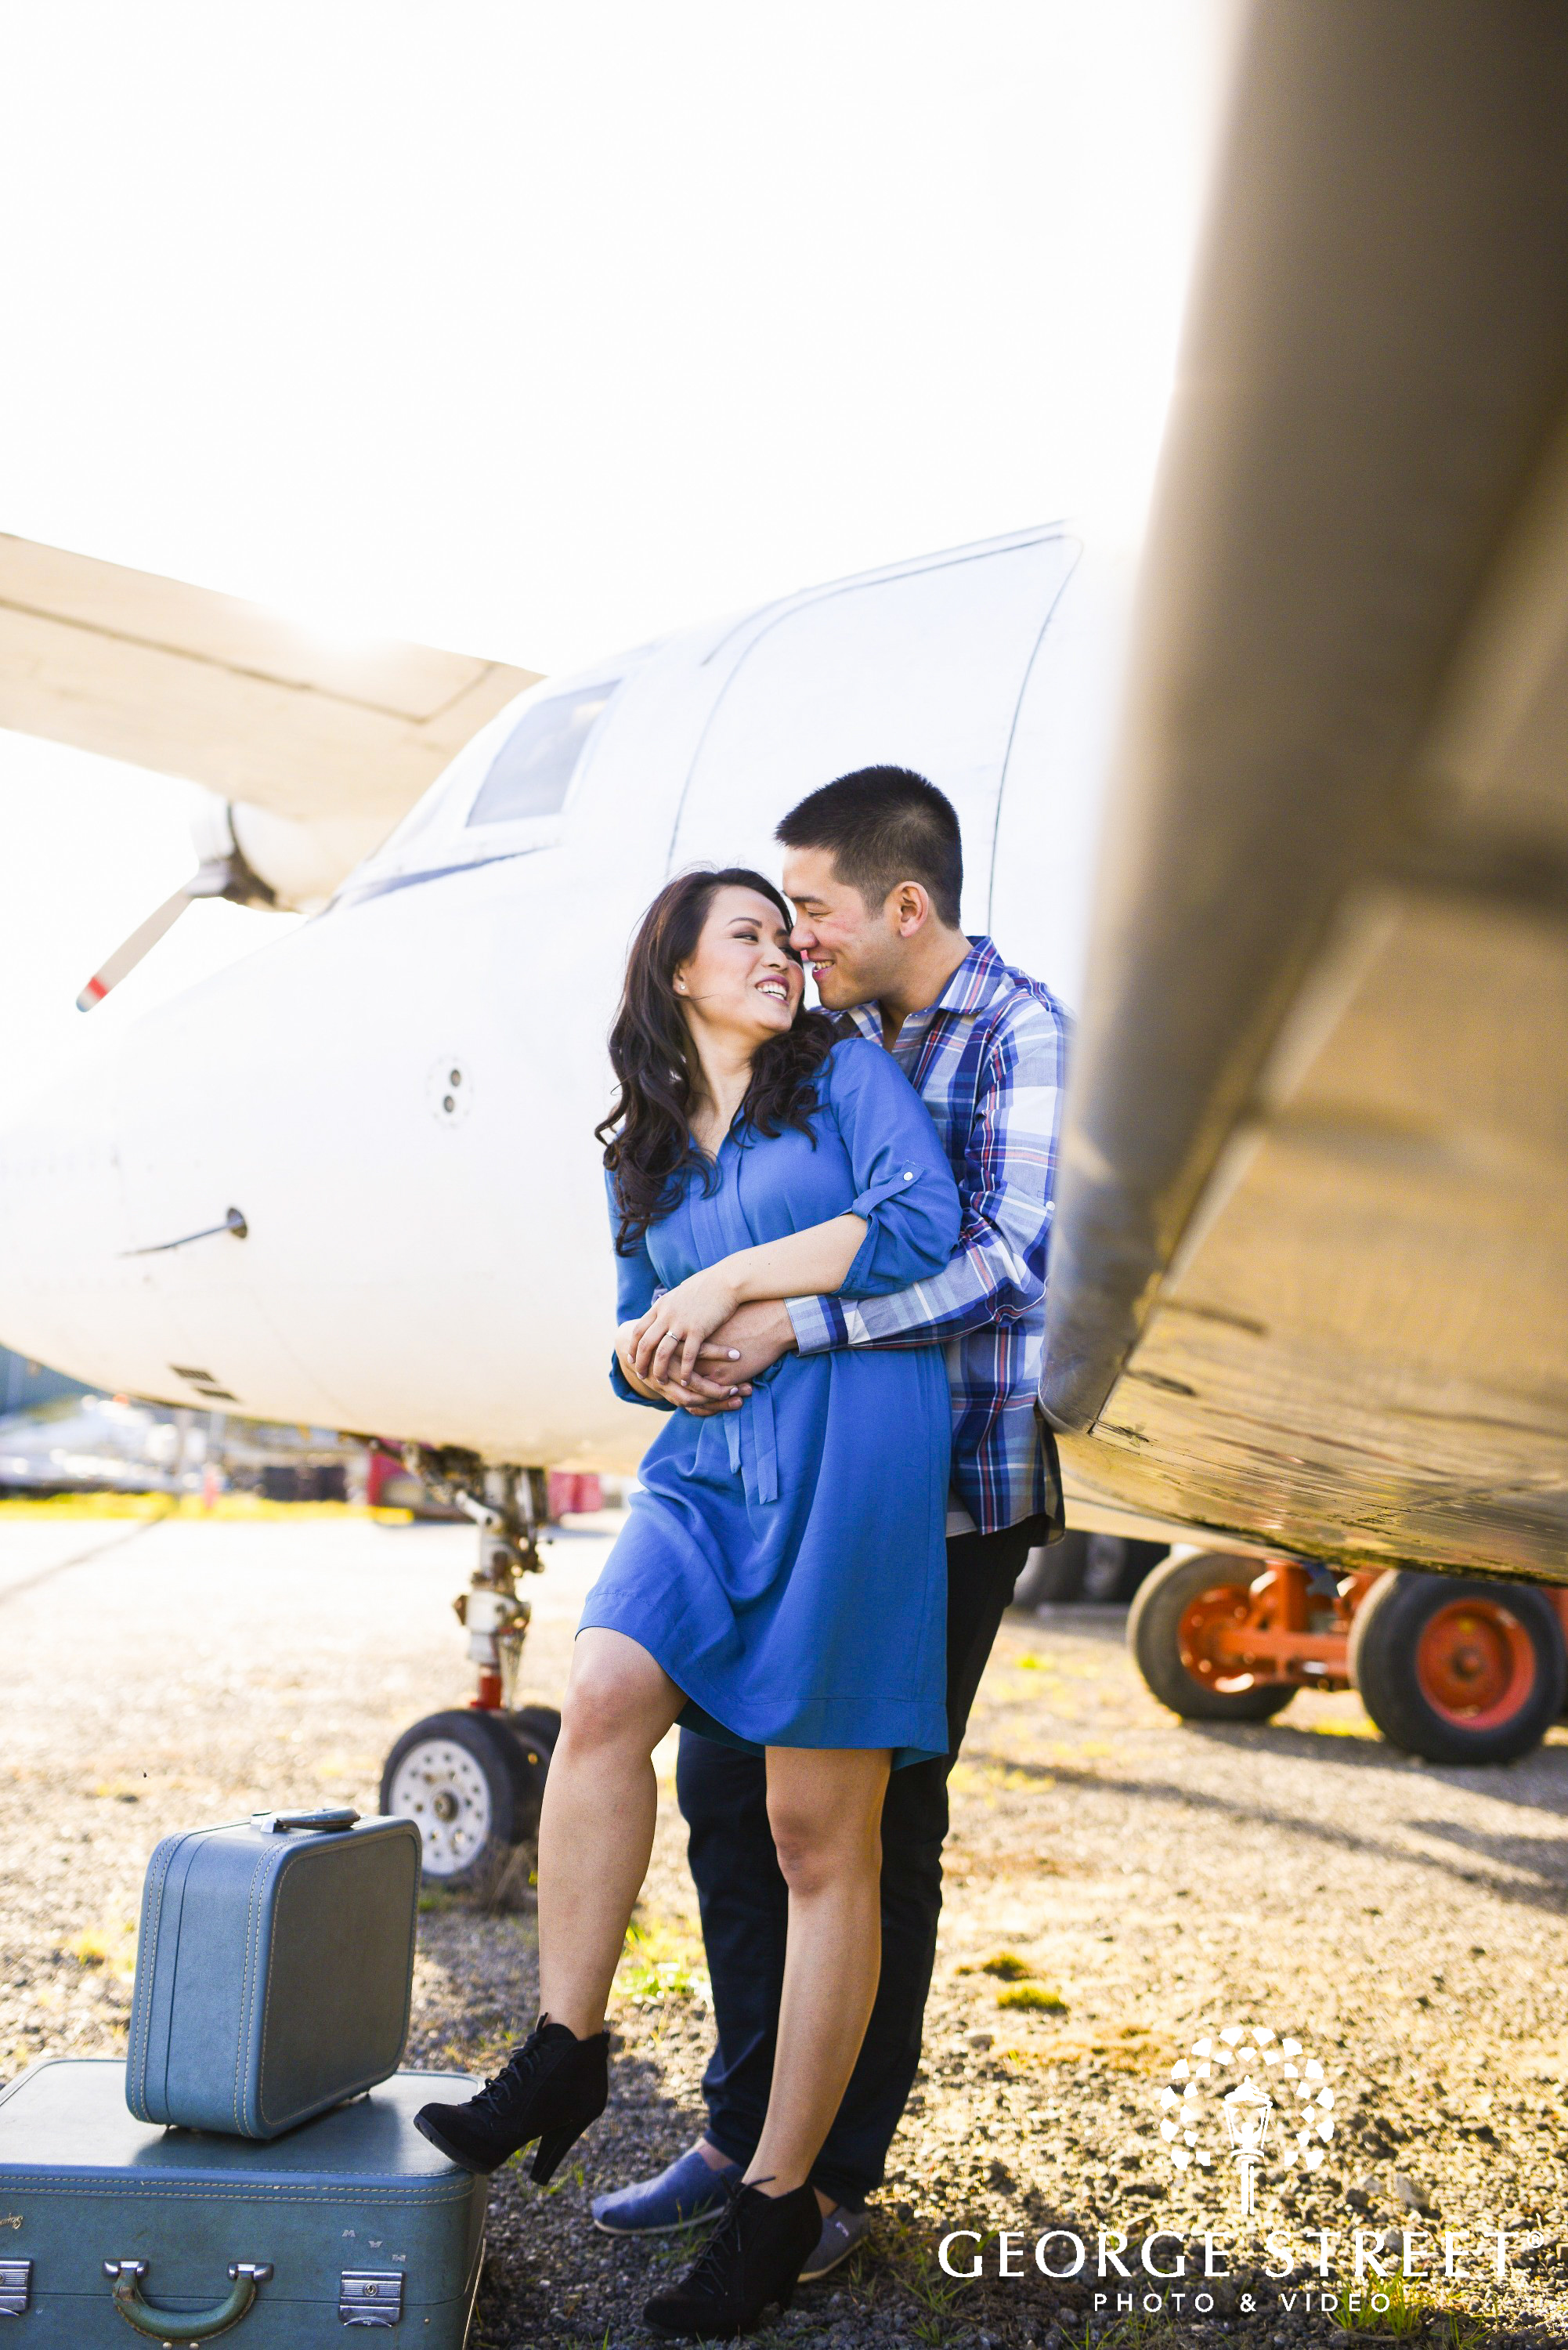 couple posing by airplane with luggage